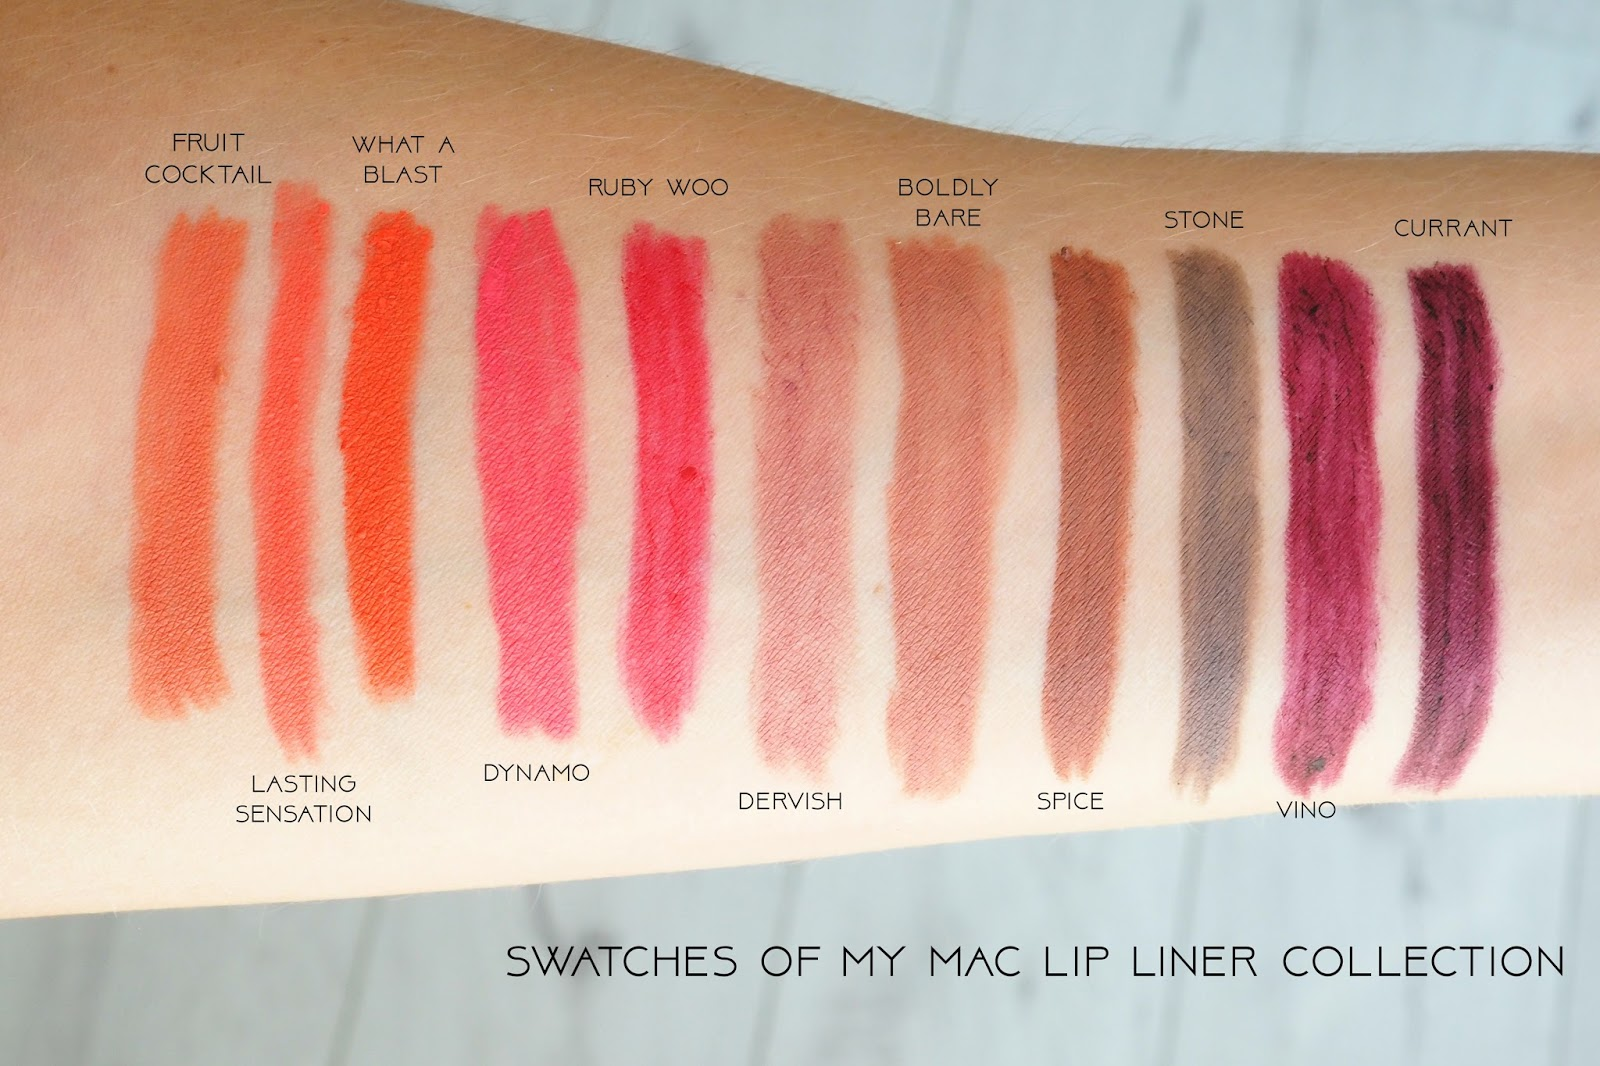 Super My MAC Lip Liner Collection With Swatches - Devoted To Pink NM03